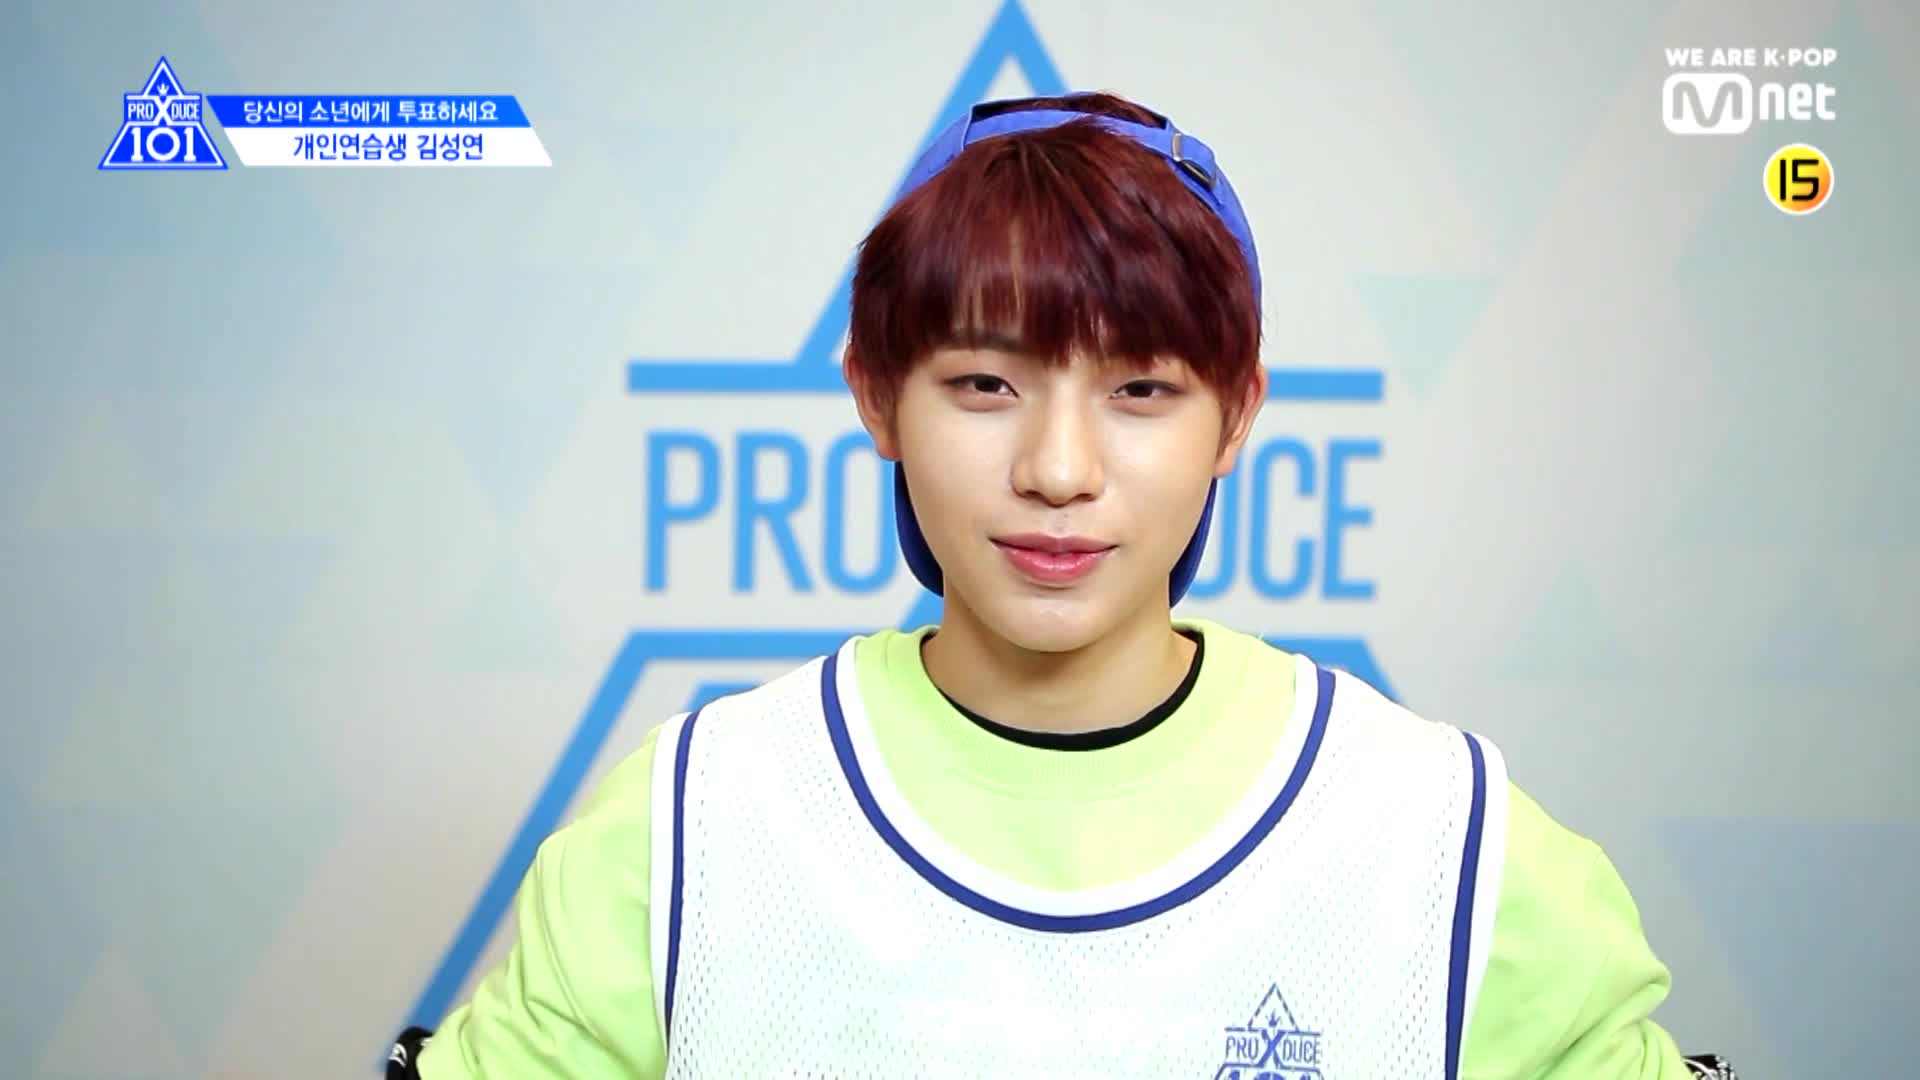 [PRODUCE X 101] EYE CONTACT CHALLENGE l KIM SUNG YEON(Independent Trainee)